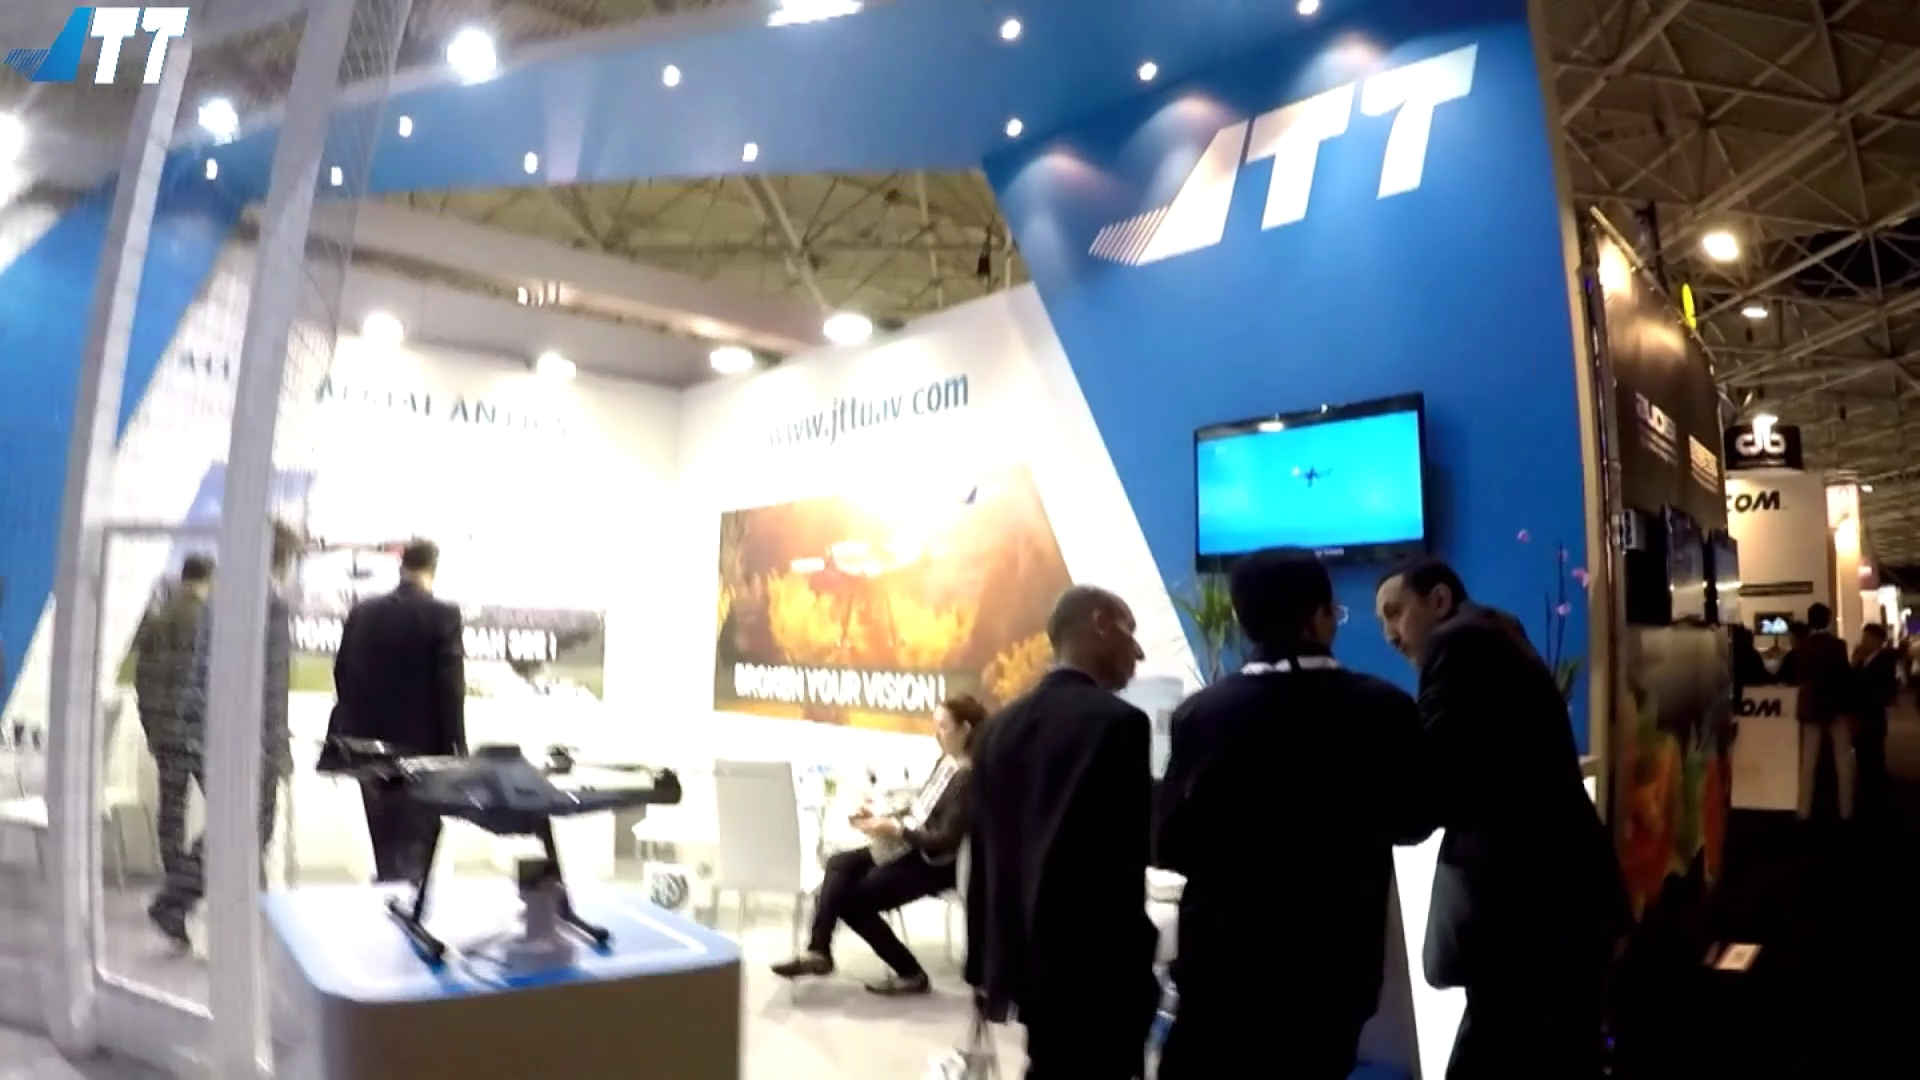 JTT UAV-Holland unmanned aerial vehicle exhibition